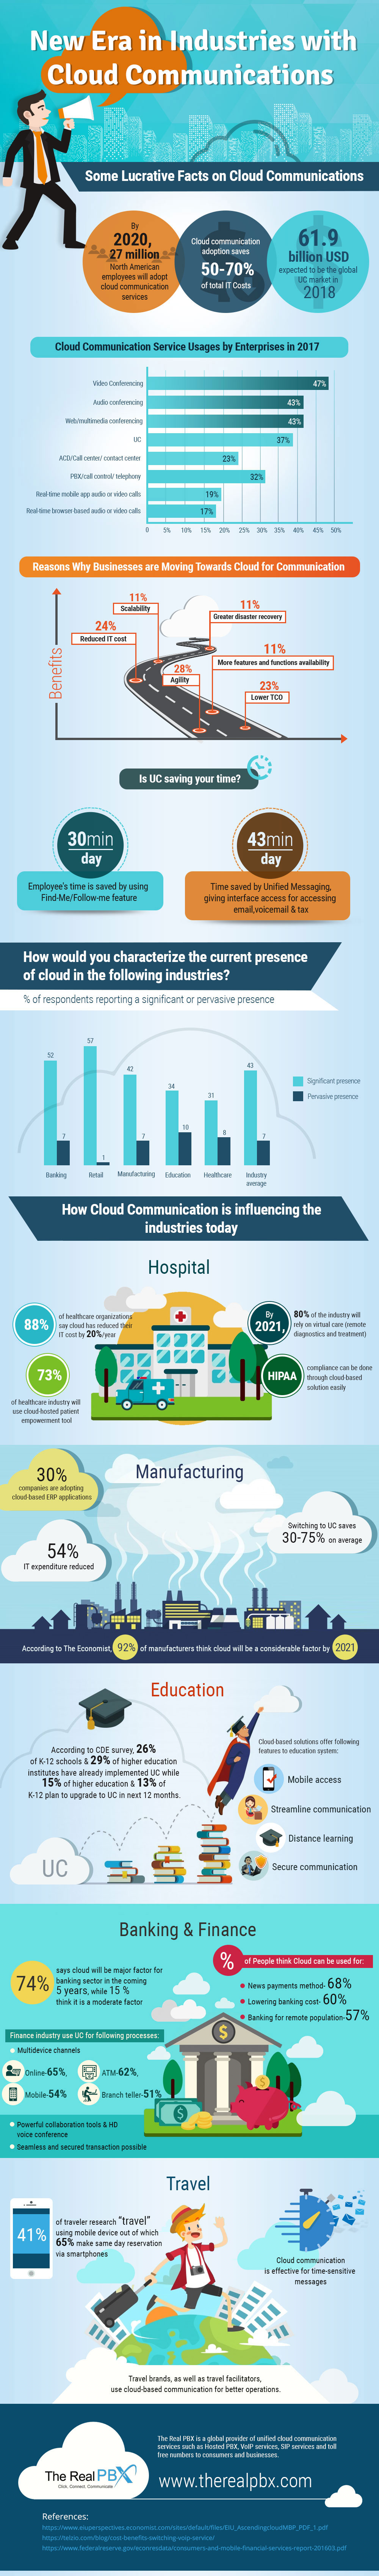 New-Era-in-Industries-With-Cloud-Communications